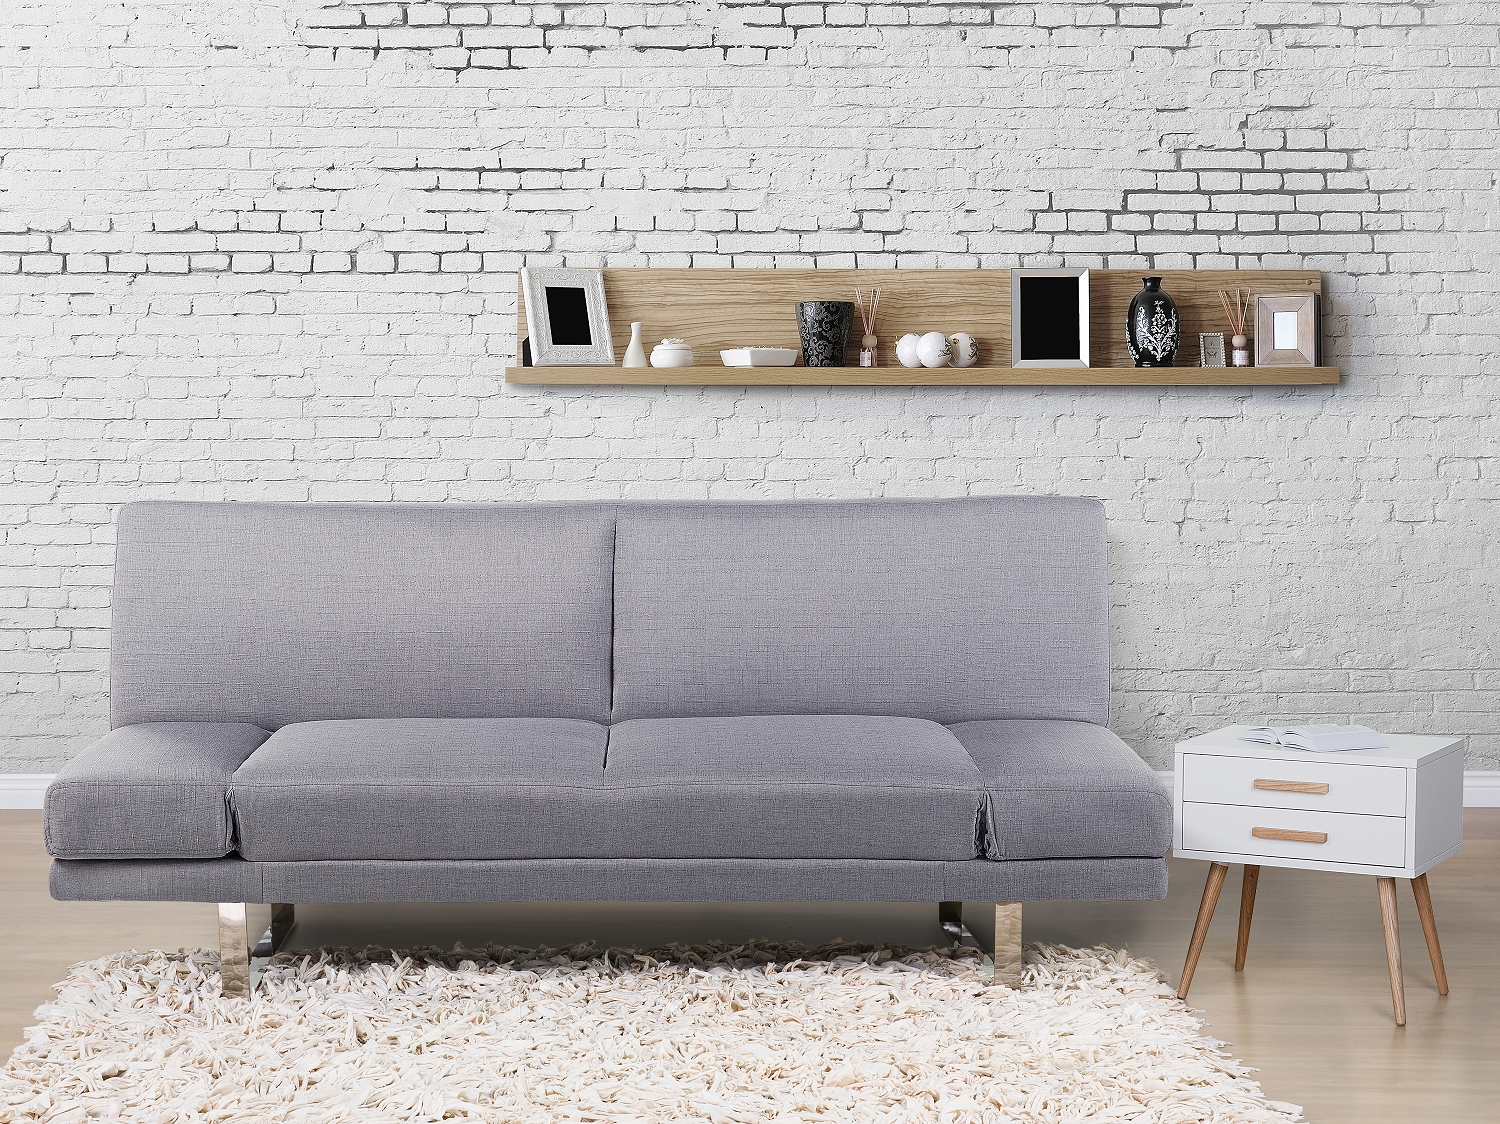 sofa hellgrau schlafsofa couch schlafcouch funktionssofa polstersofa ebay. Black Bedroom Furniture Sets. Home Design Ideas